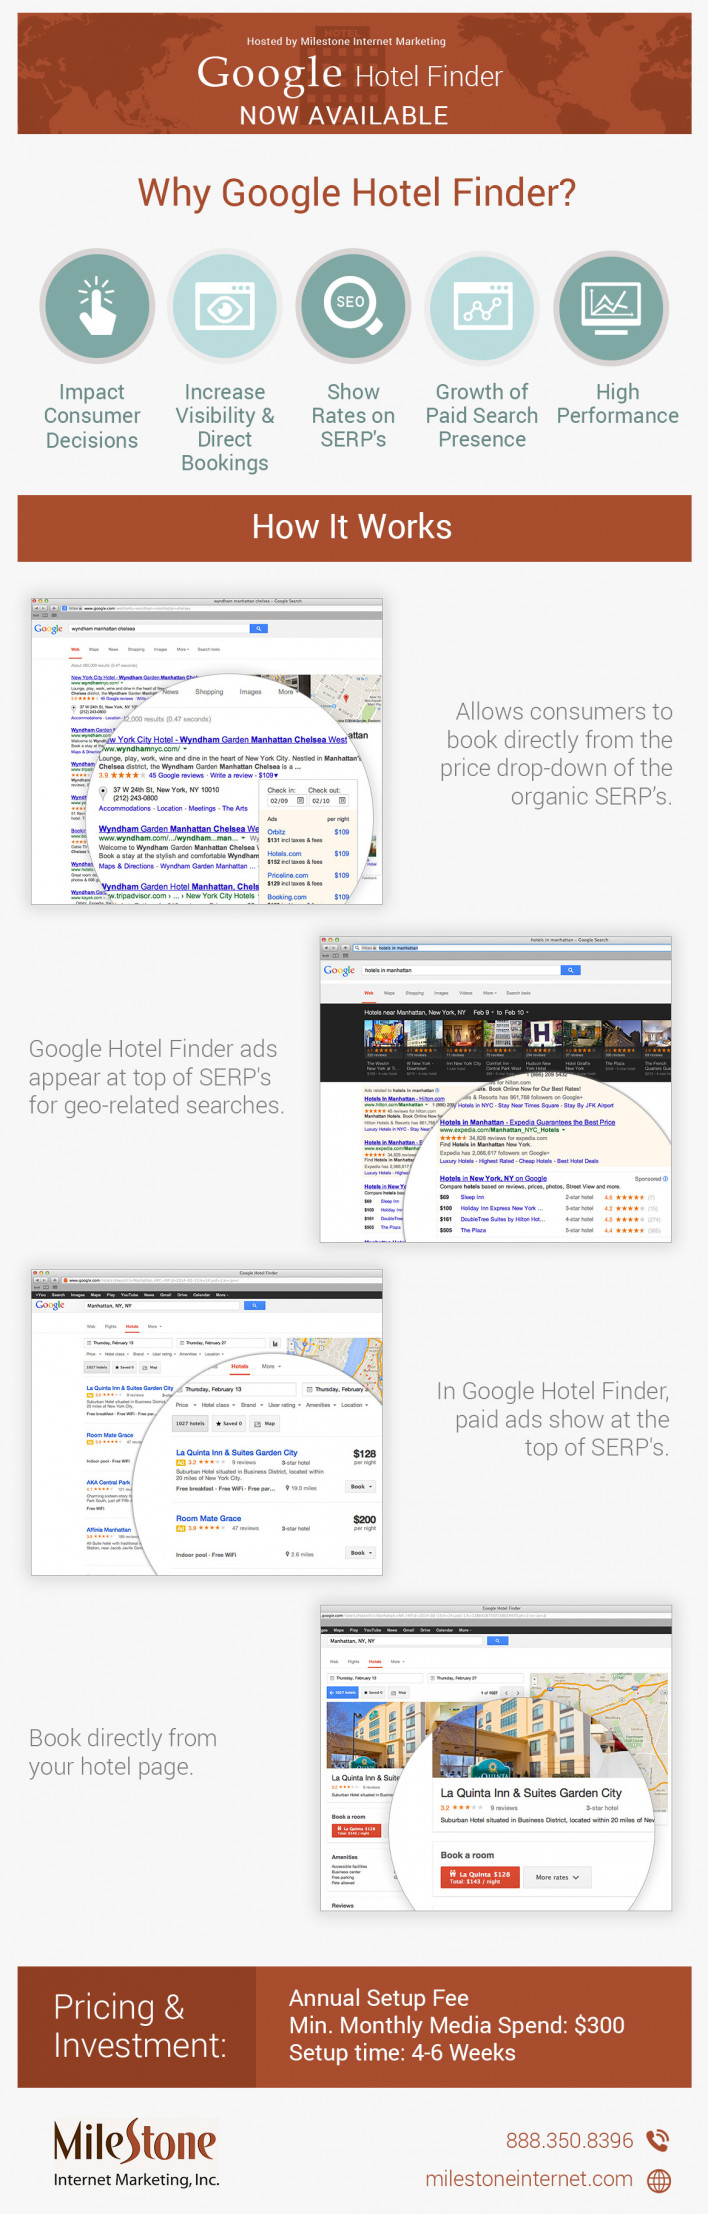 Why Google Hotel Finder